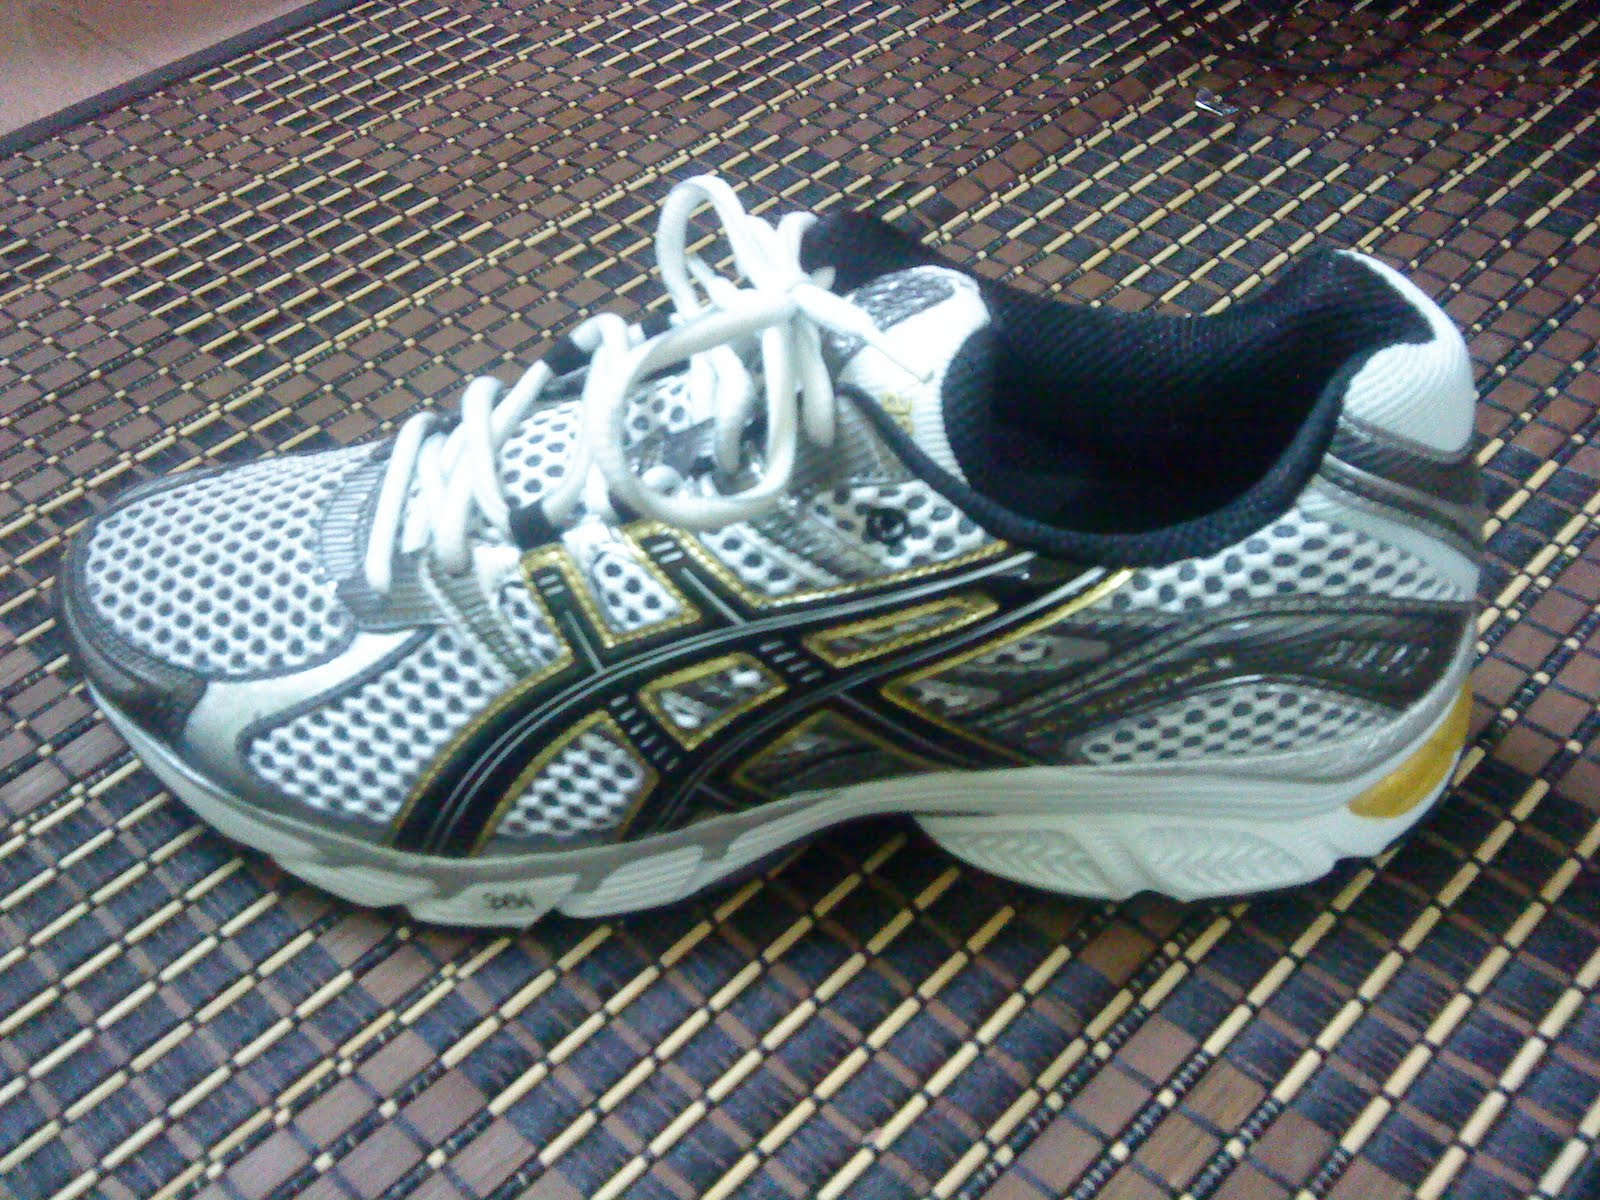 My Asics Gel Kanbarra still in good condition. Haven t done much running  tbh. Awesome running shoe though. d82f20d93f0c5